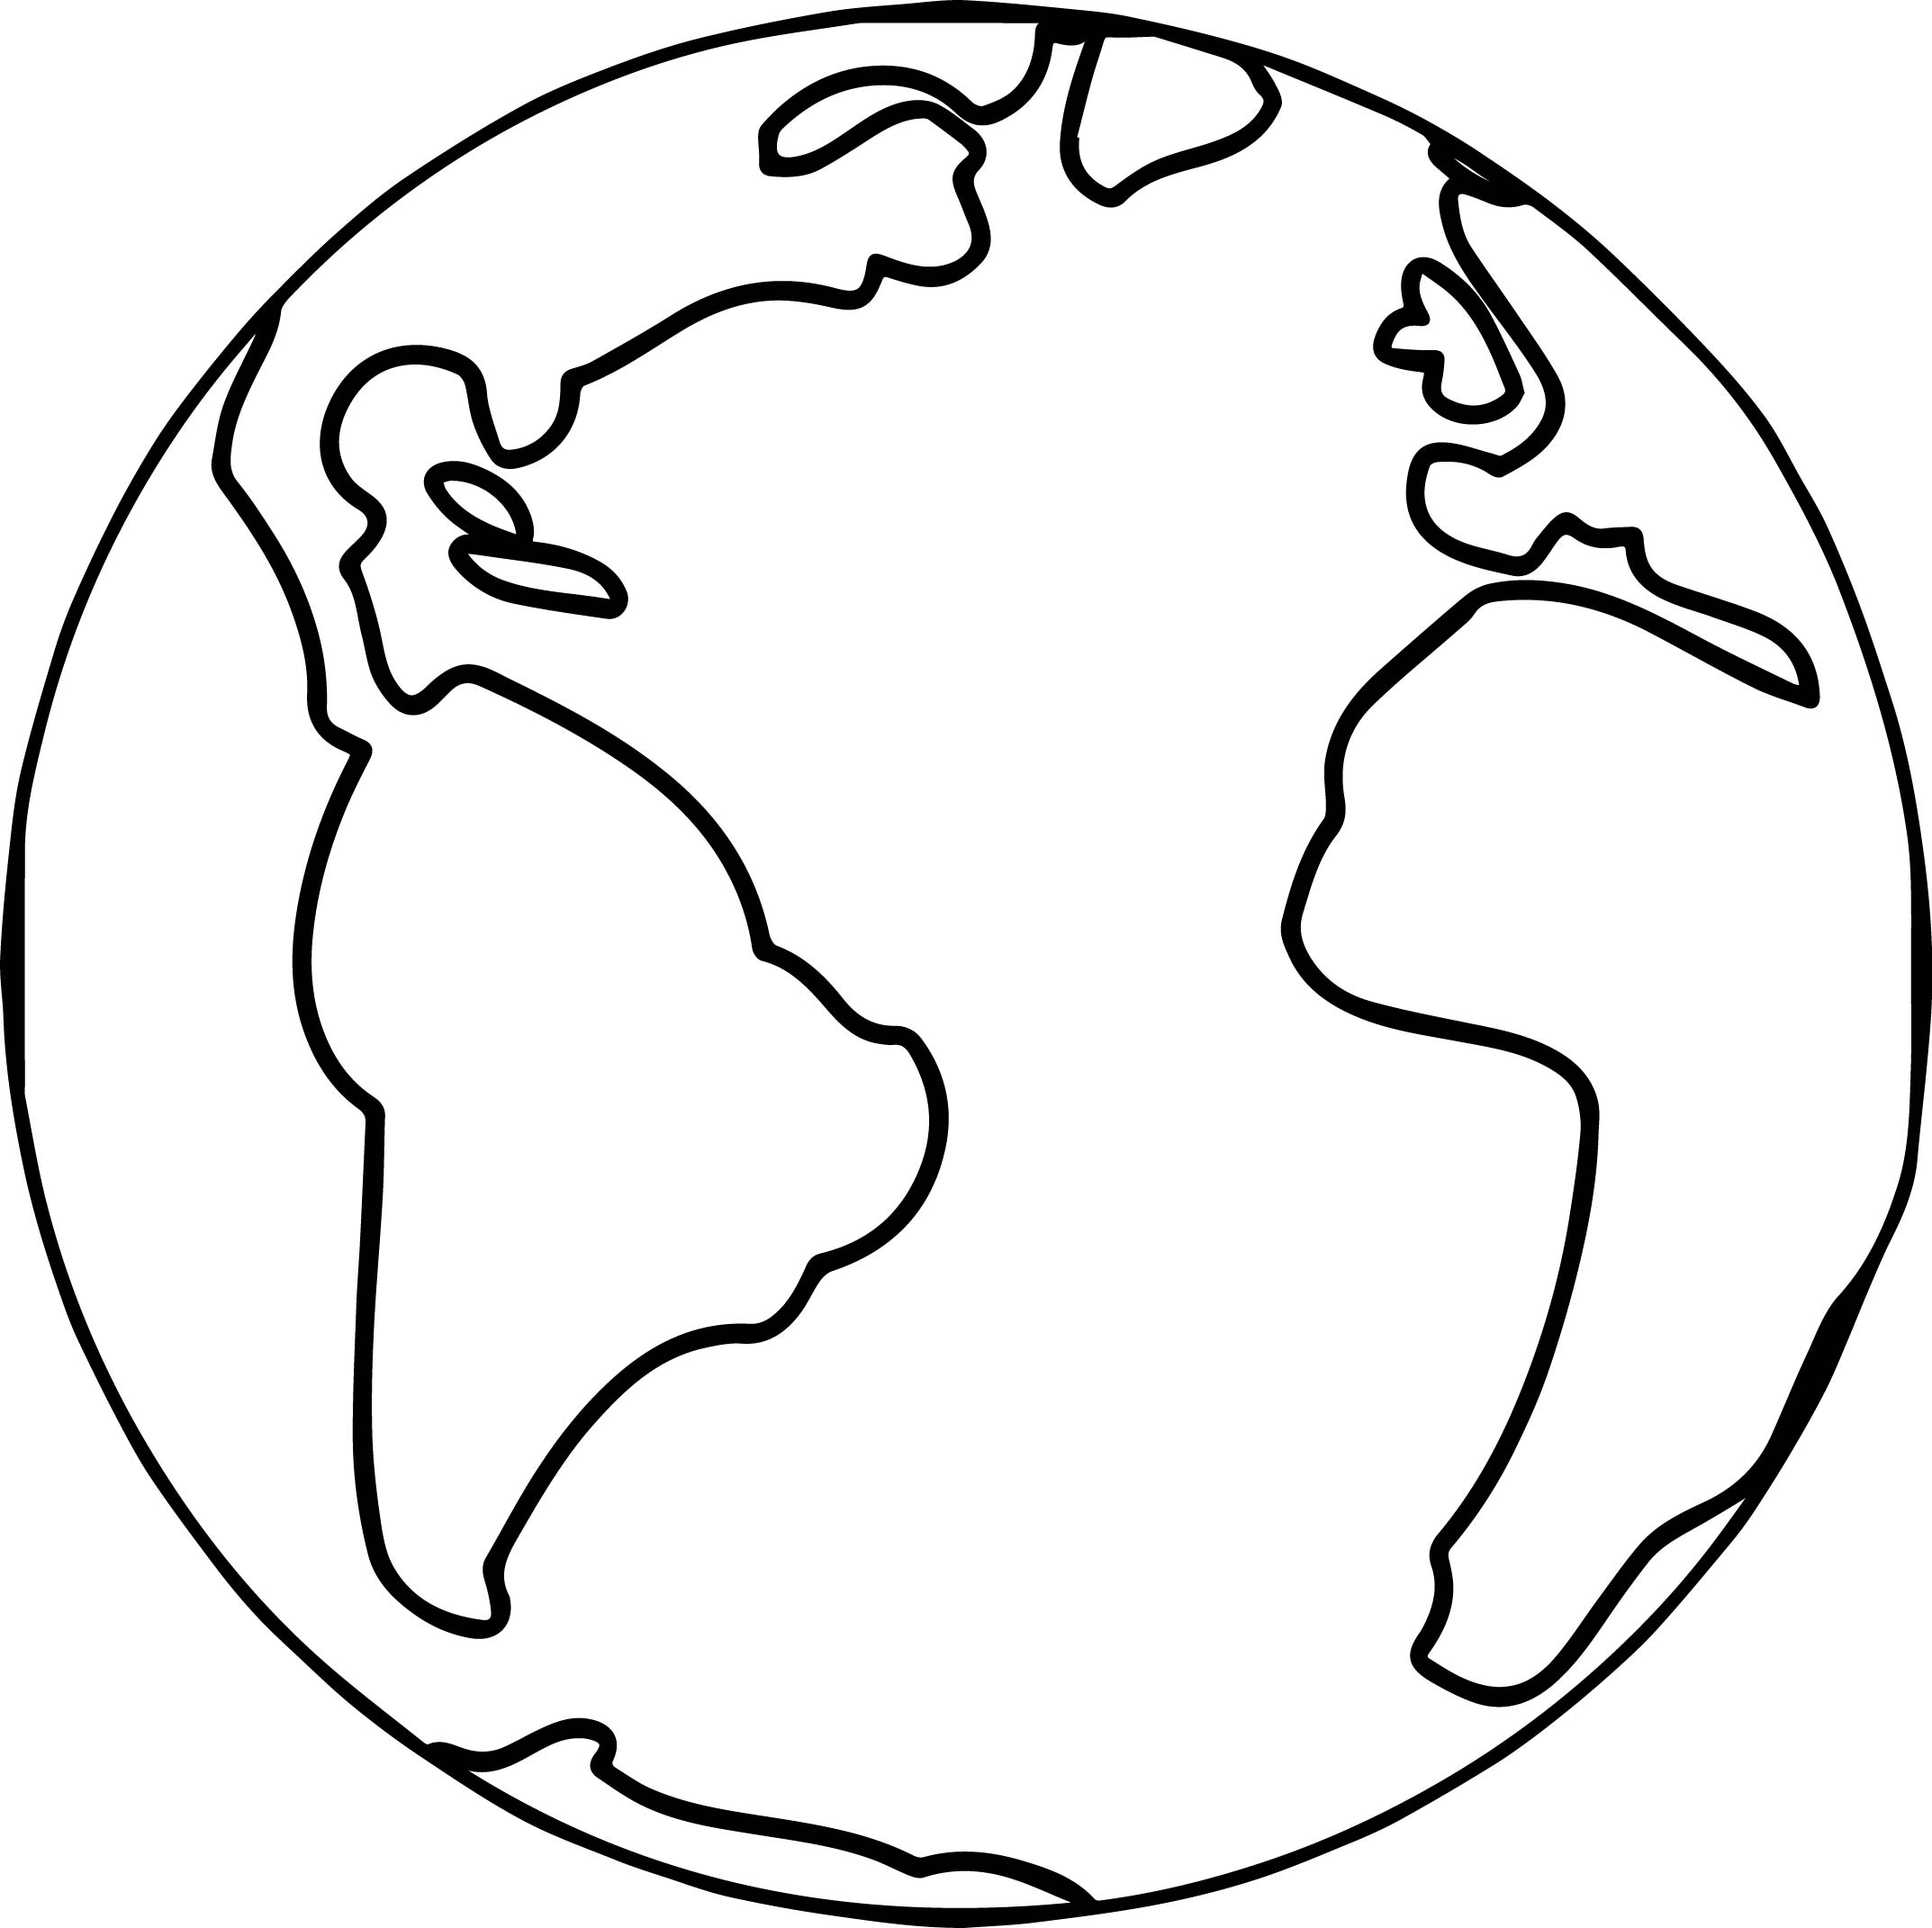 2146x2142 Earth Outline Coloring Pages